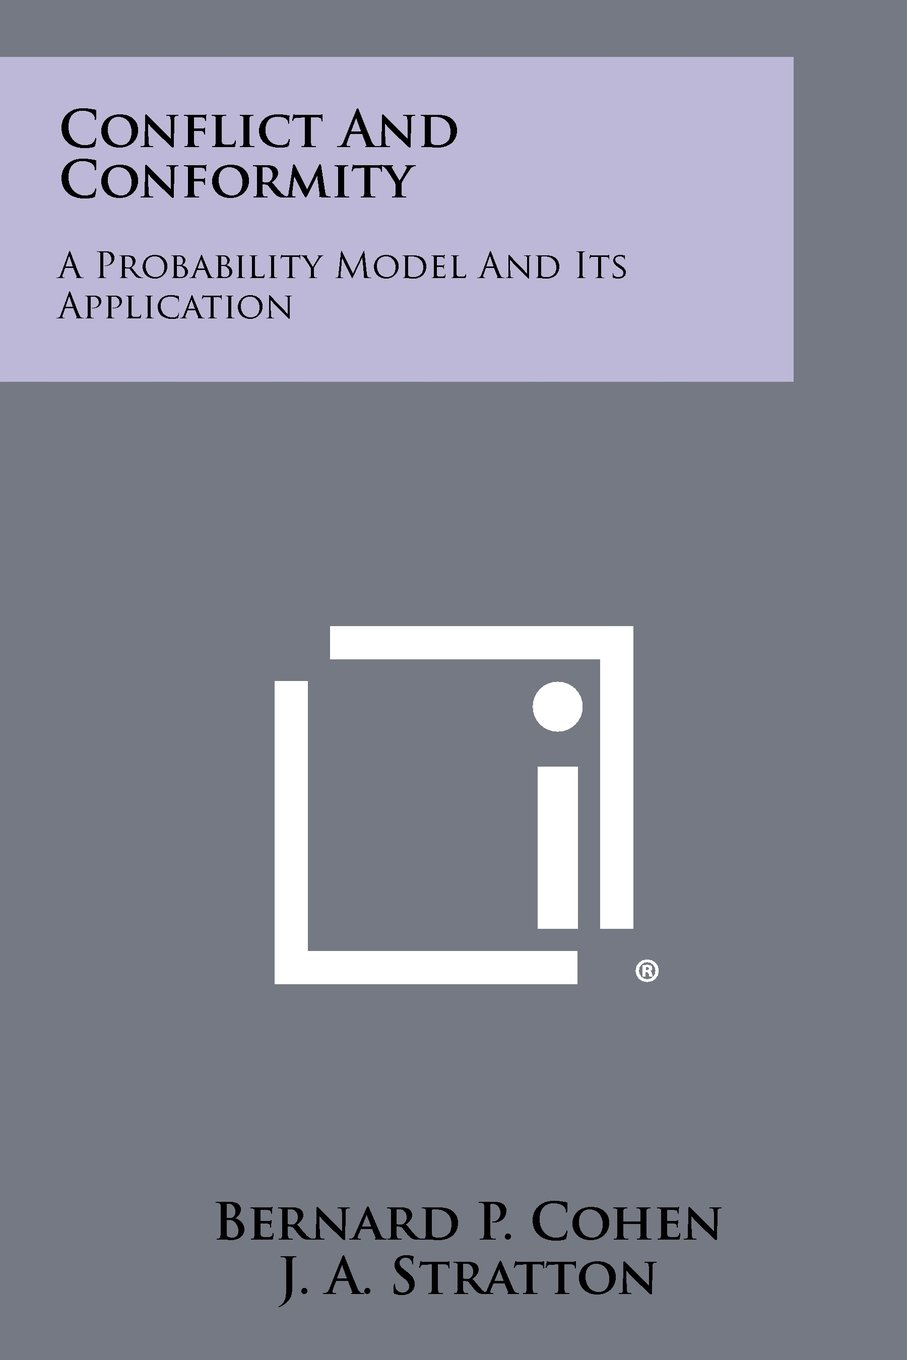 Download Conflict And Conformity: A Probability Model And Its Application PDF